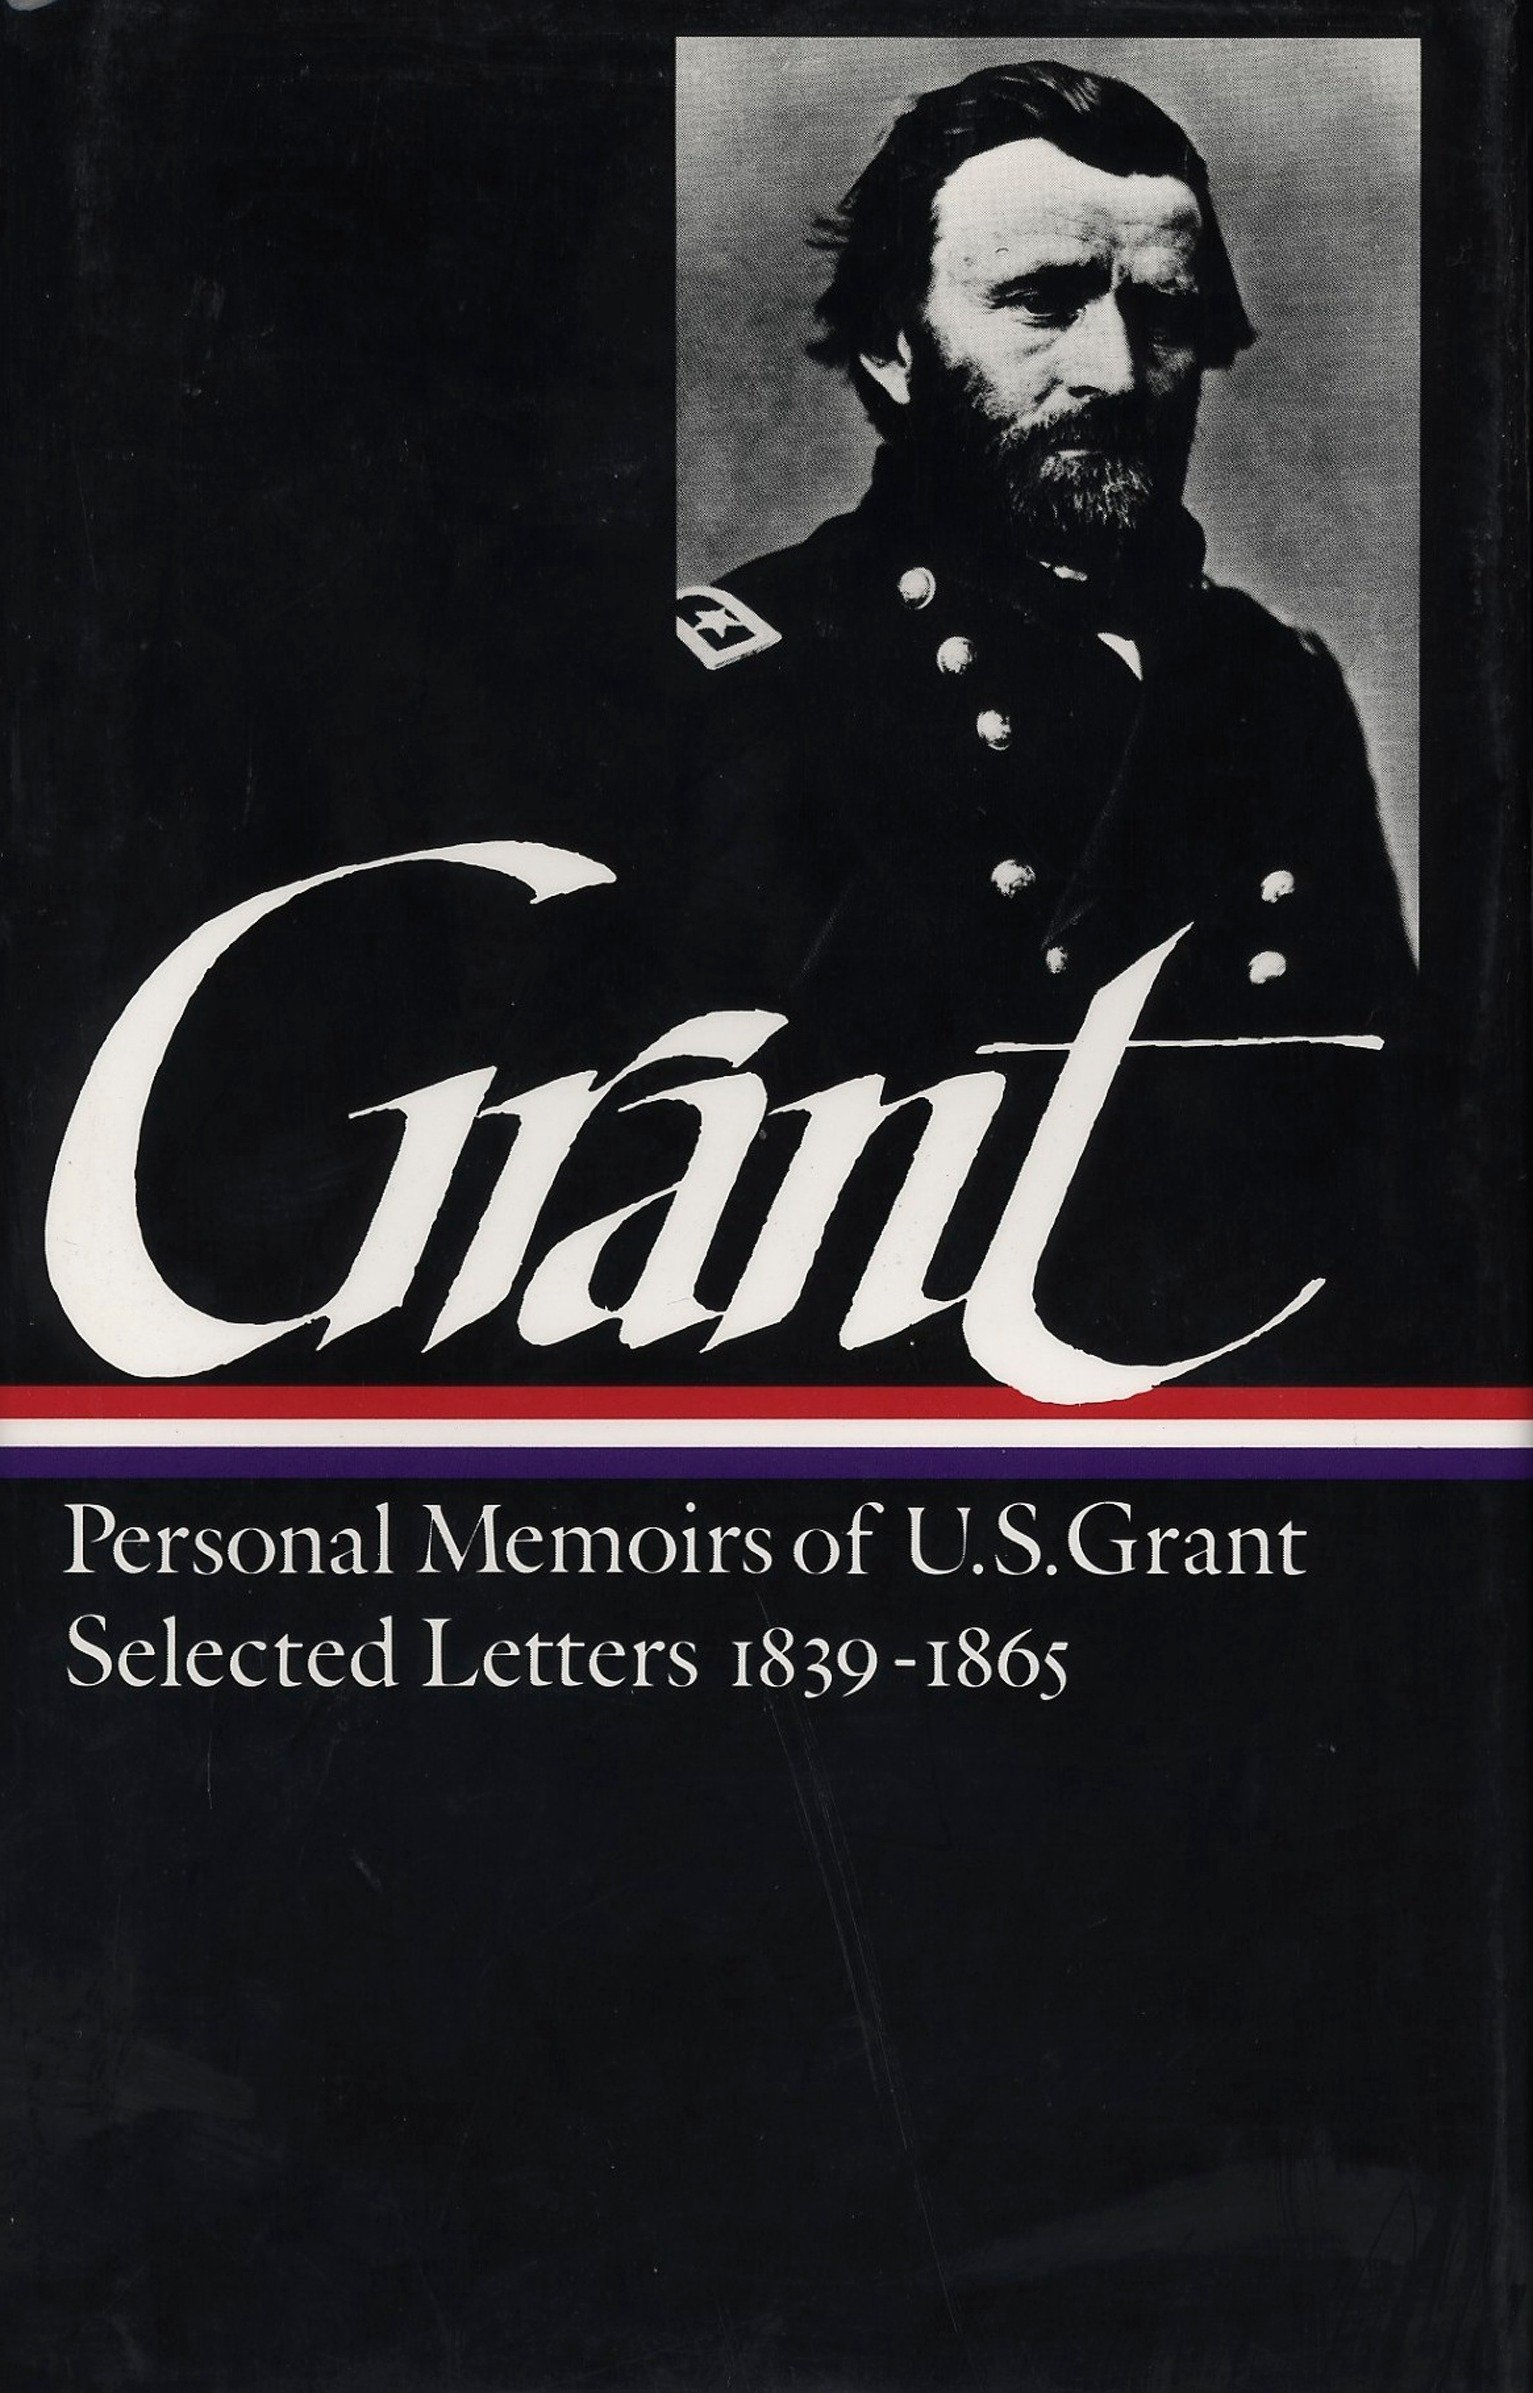 Ulysses S. Grant : Memoirs and Selected Letters : Personal Memoirs of U.S. Grant / Selected Letters, 1839-1865 (Library of America) by Library of America